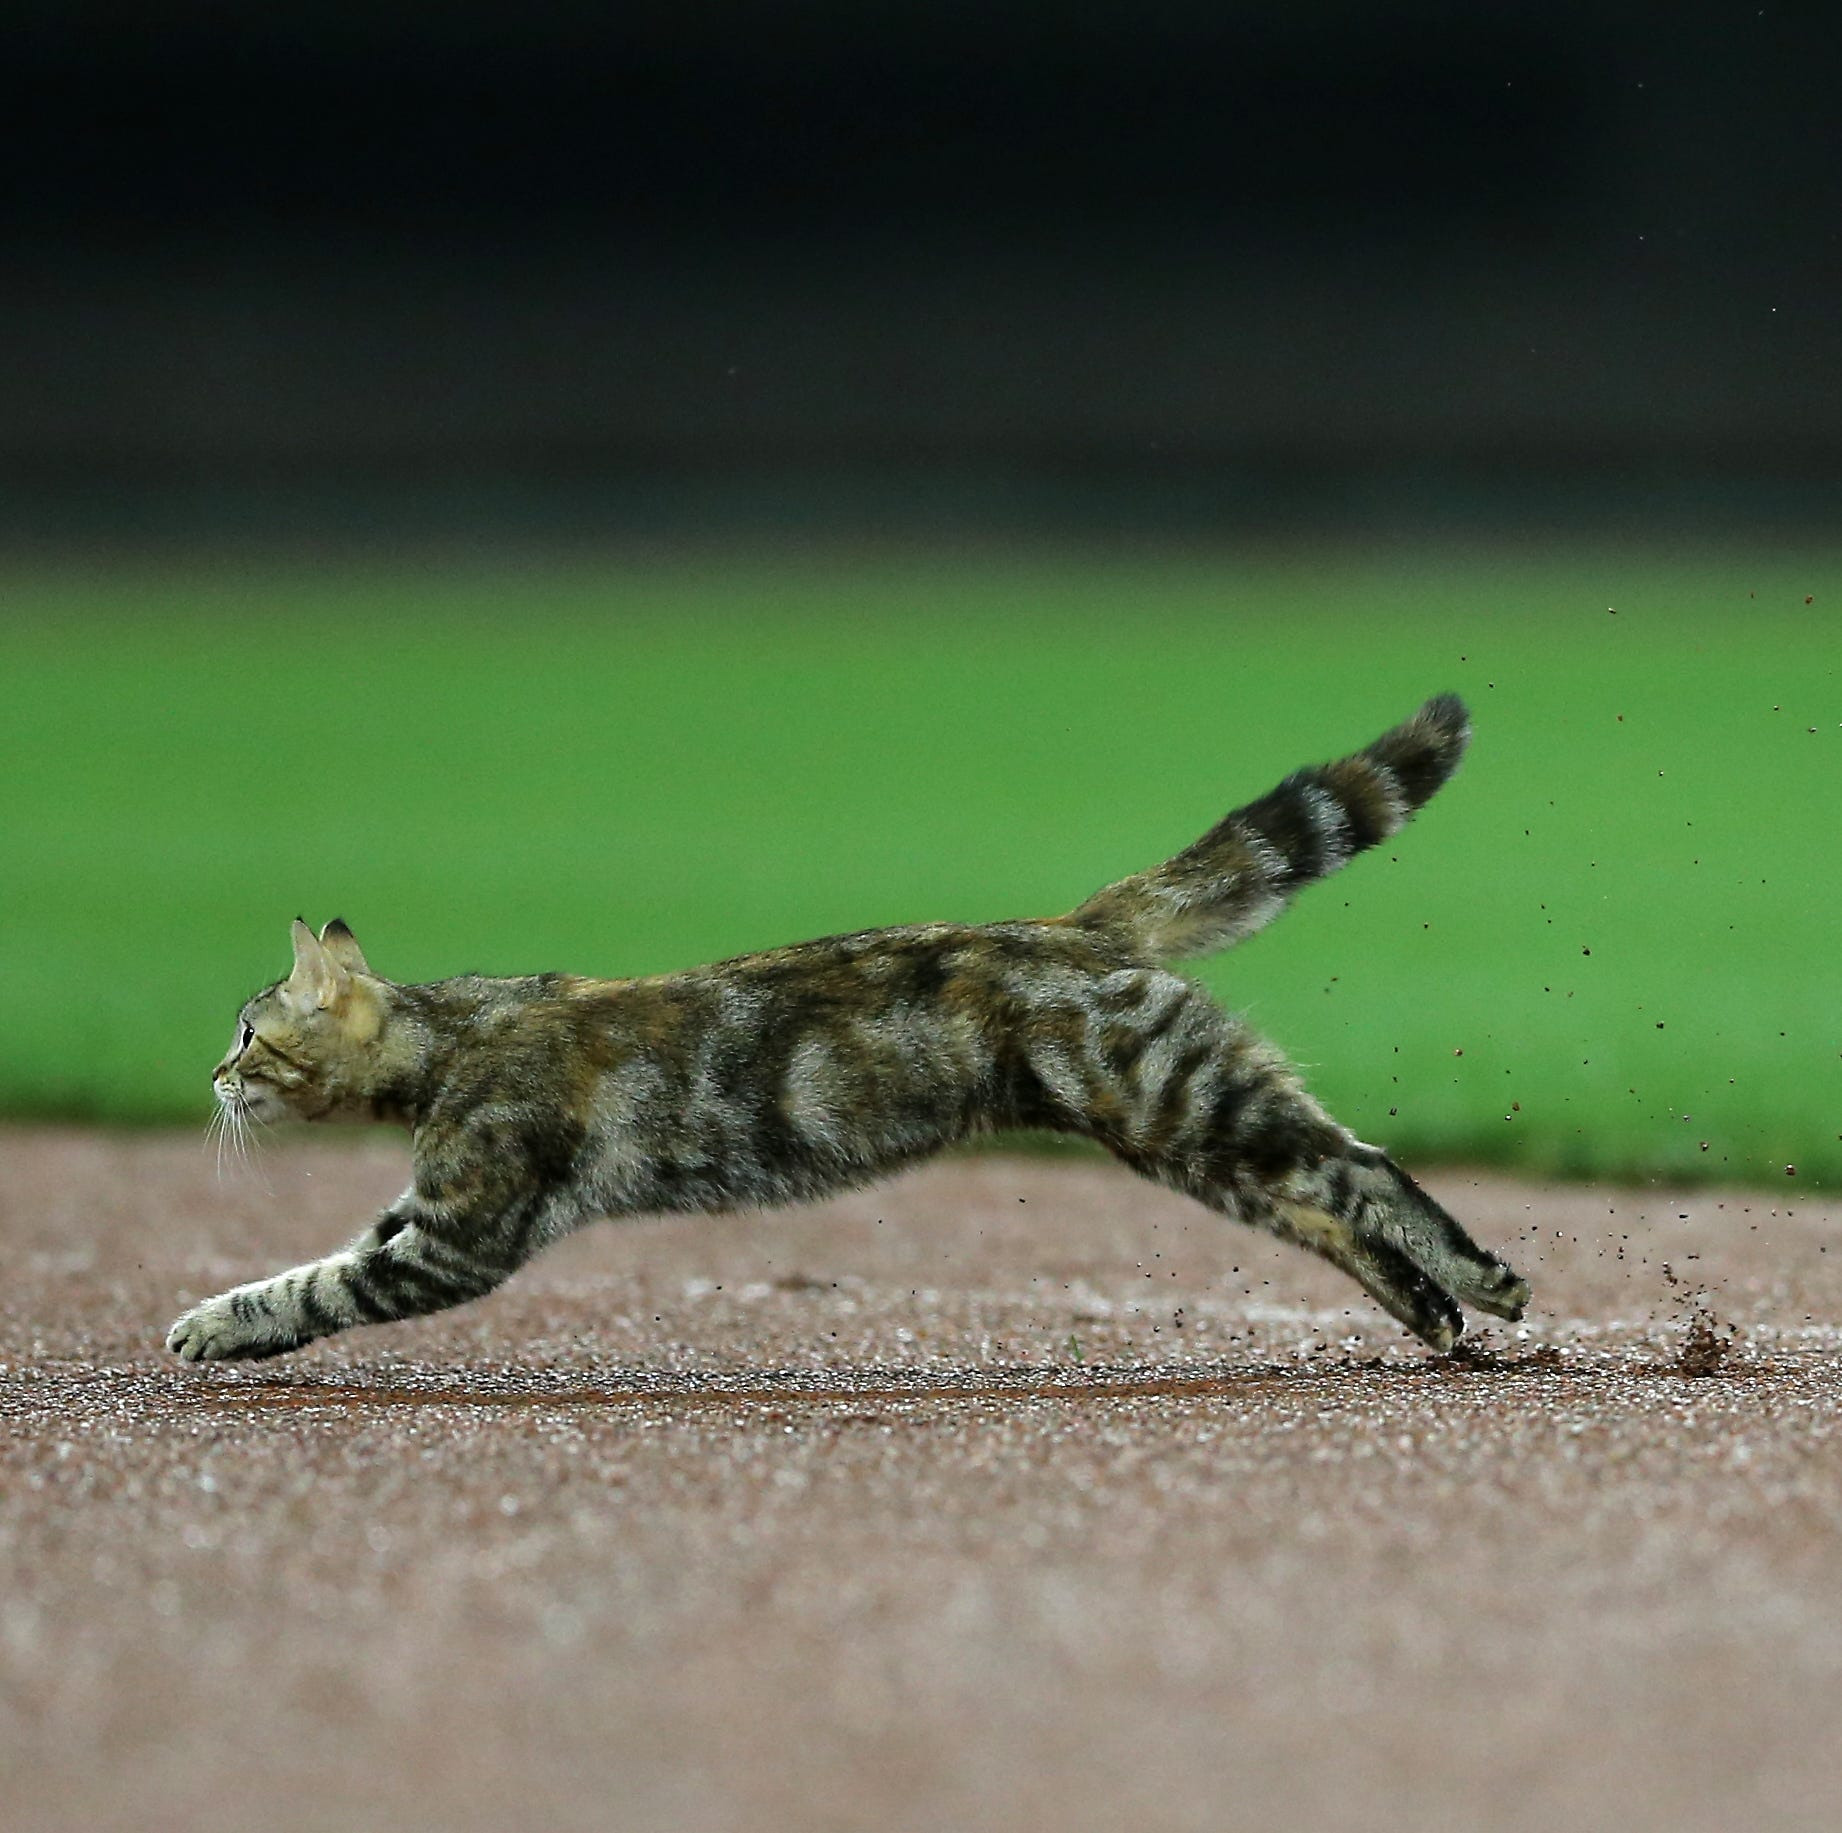 Cat running on field at GABP shows impressive speed